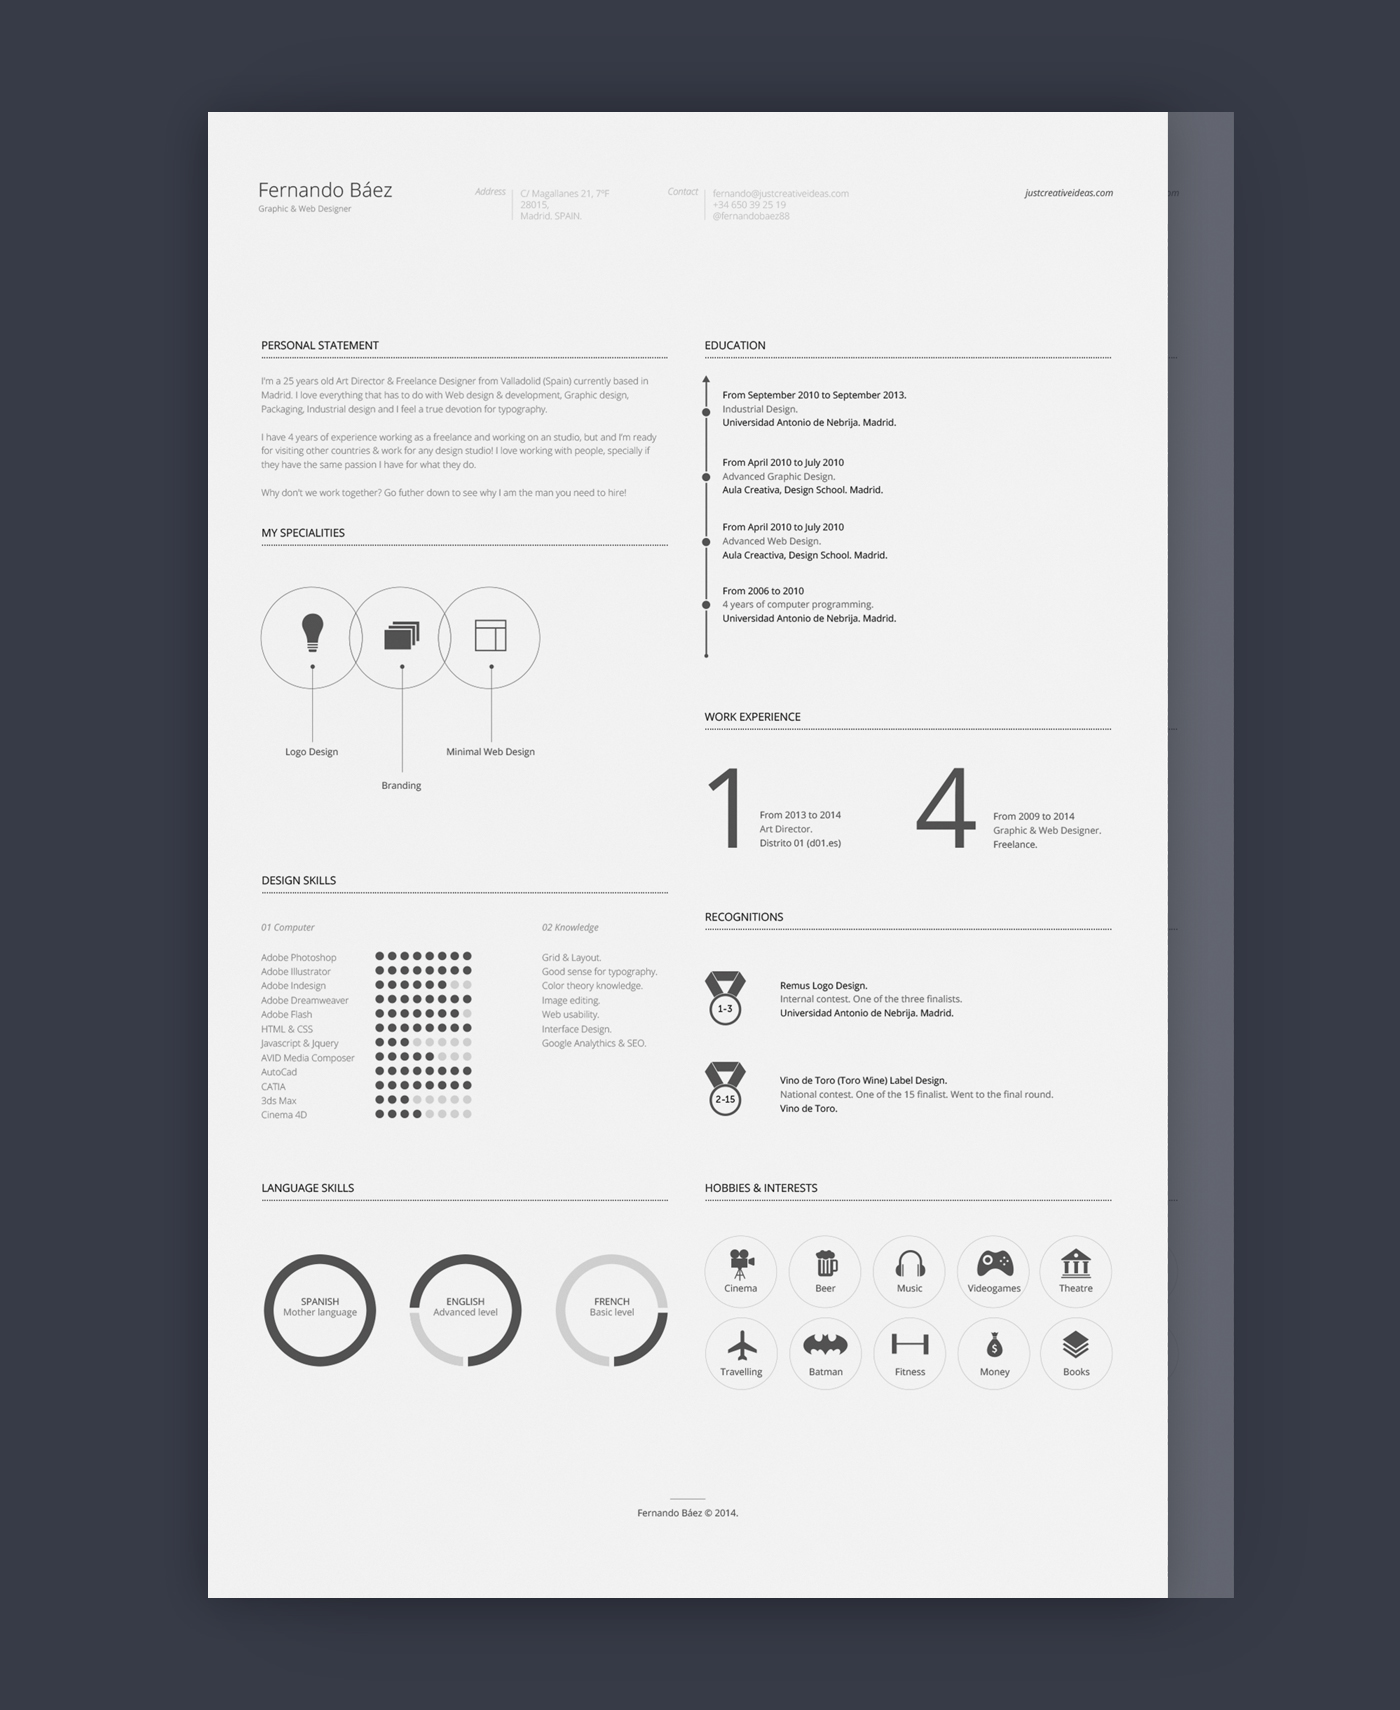 Resume Behance Resume Template premium resume templates https www behance net gallery 27305199 free professional templates